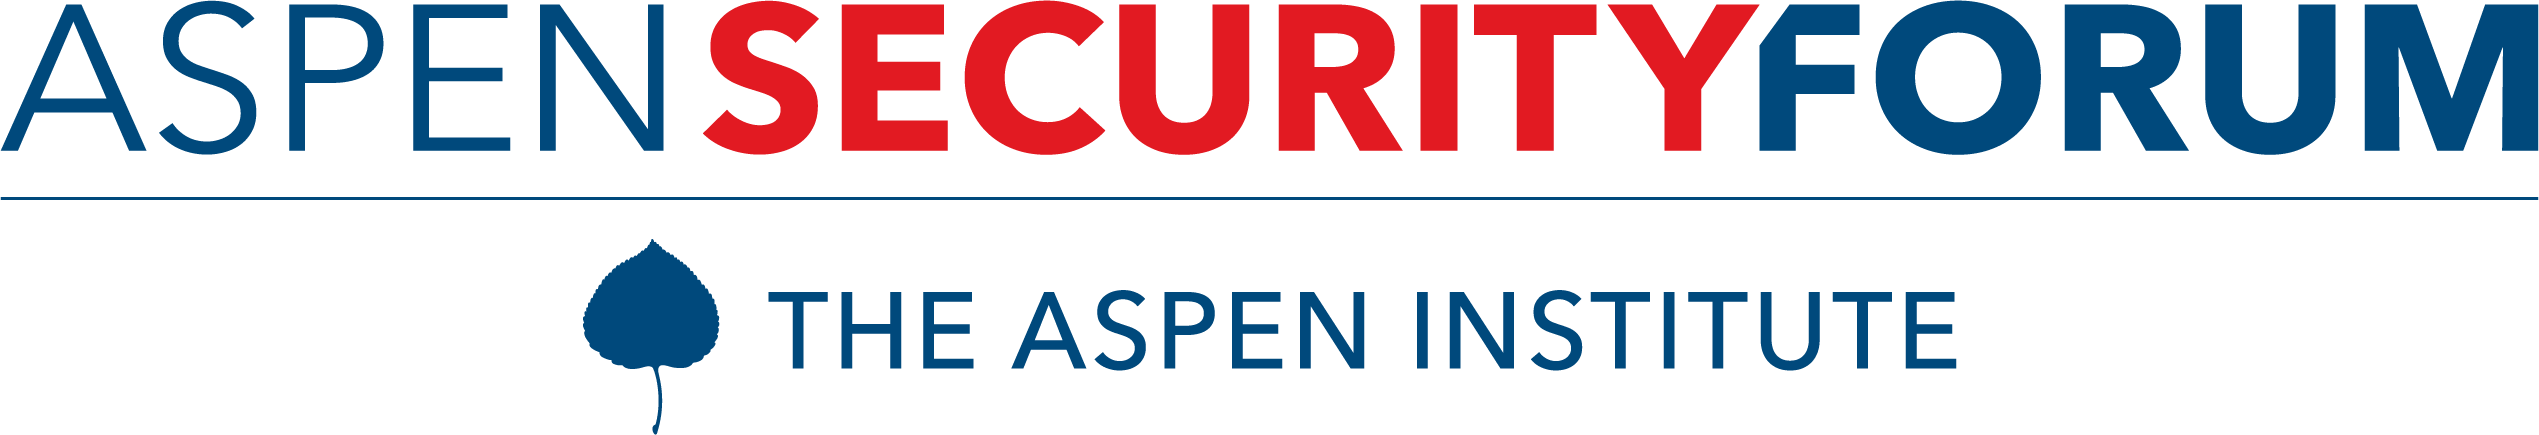 The 2019 Aspen Security Forum